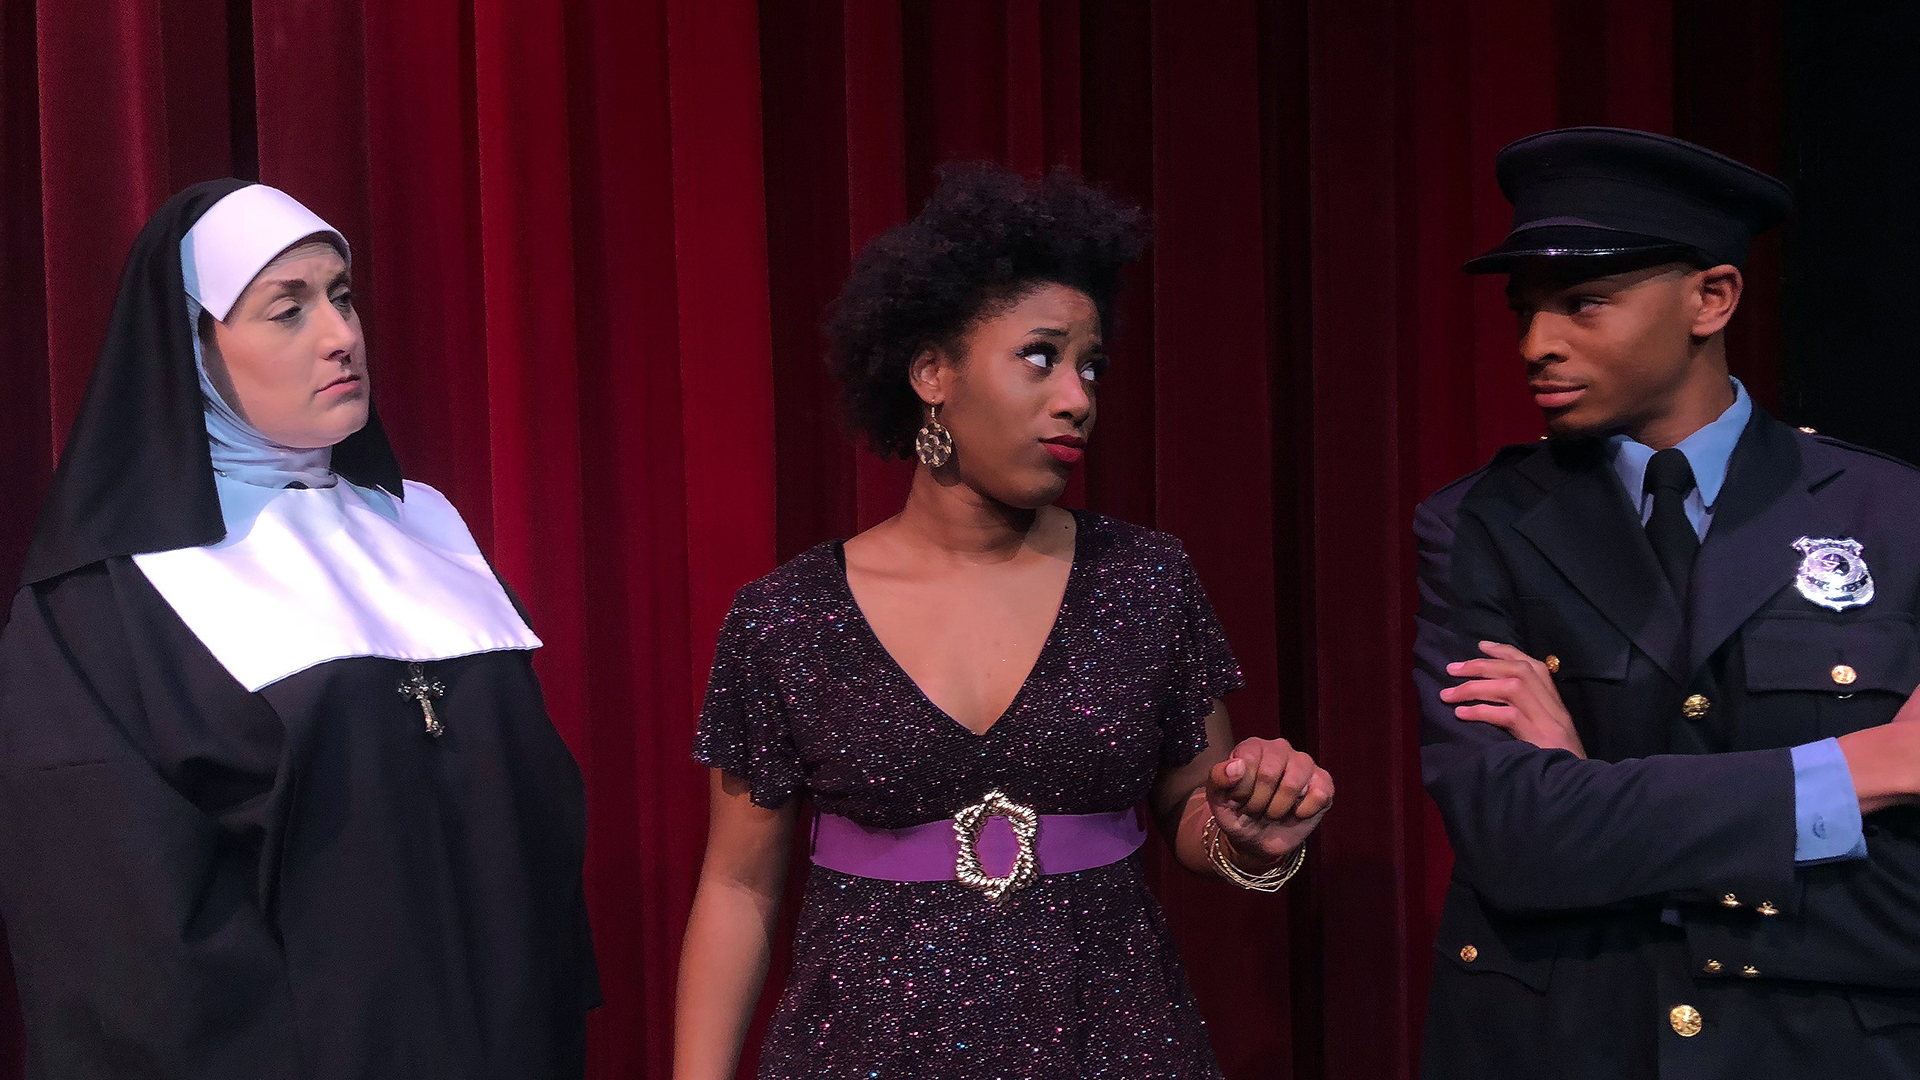 Play Here's Activity Roundup for May 17 to 24, with Muttfest, 'Sister Act,' Frontier Days, Academy Unleashed, more